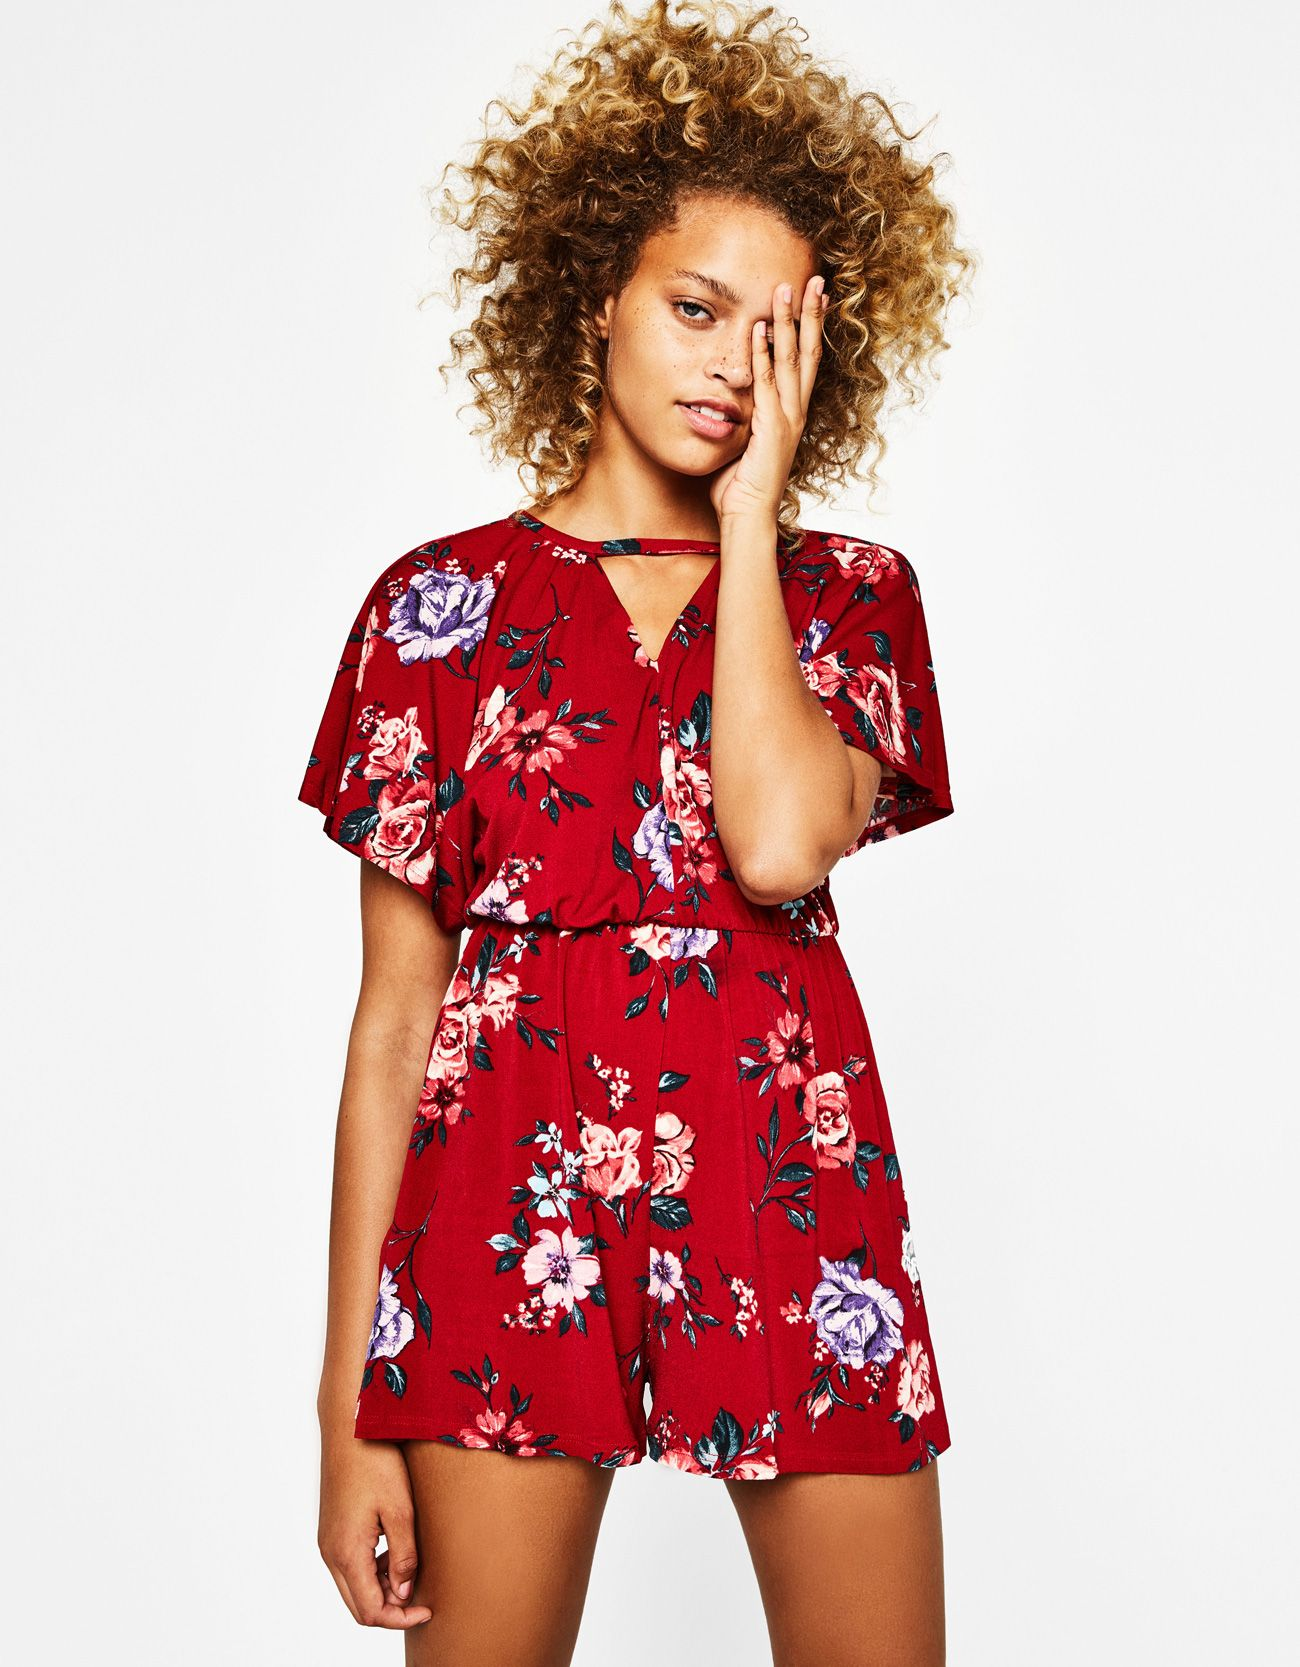 Women Chiffon Playsuit Short Sleeve Jumpsuit,Red,L,United States